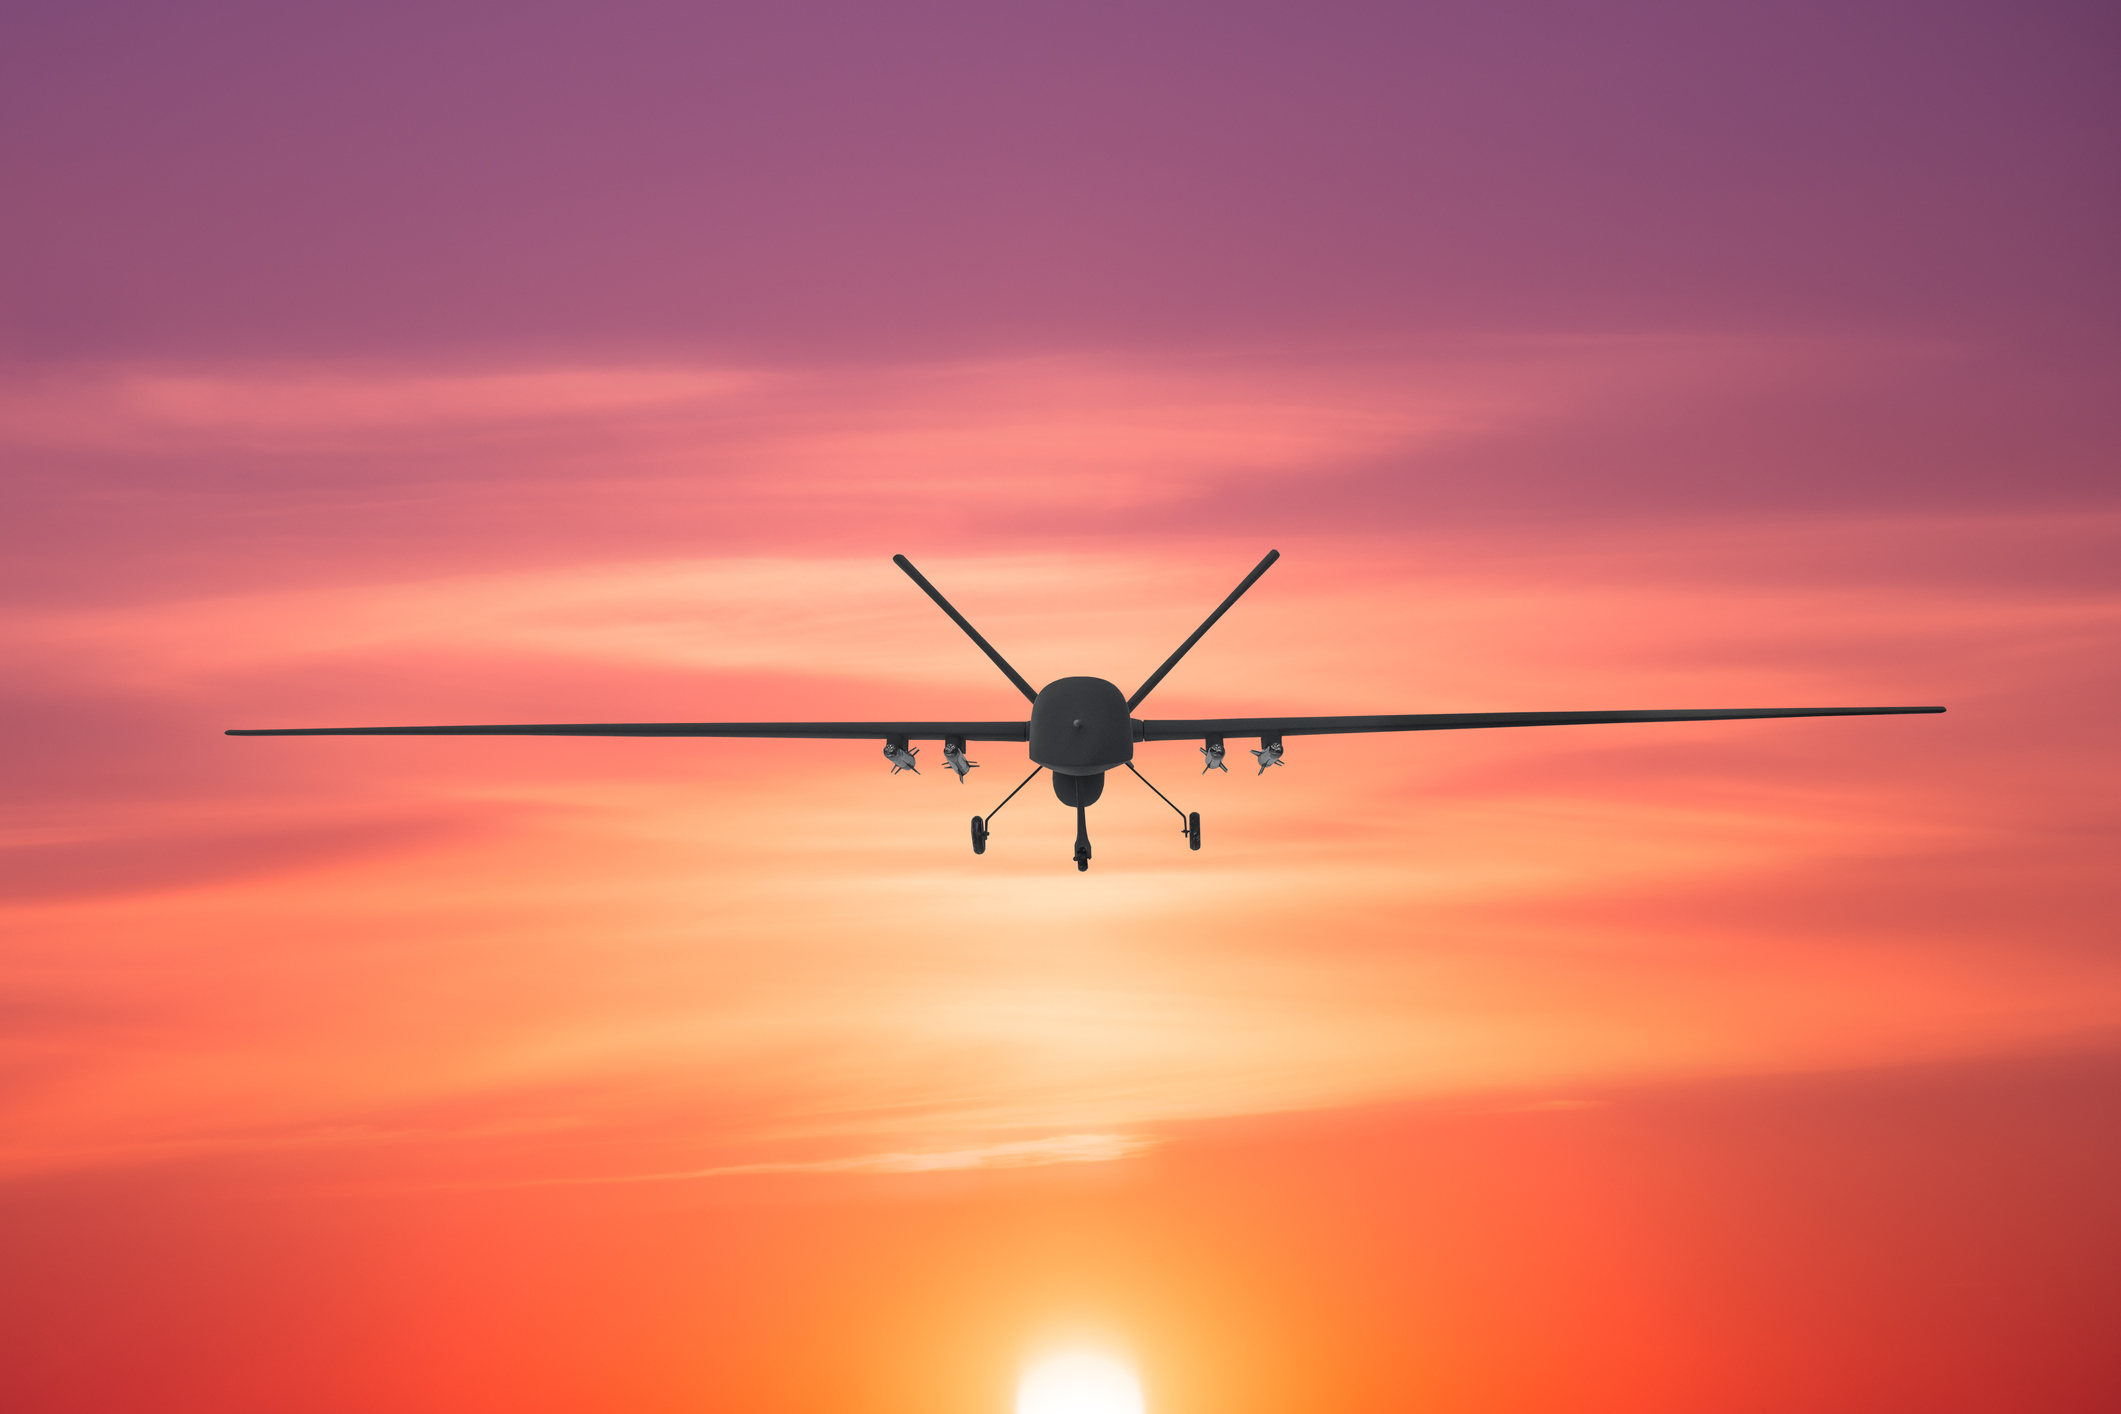 Unmanned Military Drone Patrols The Territory